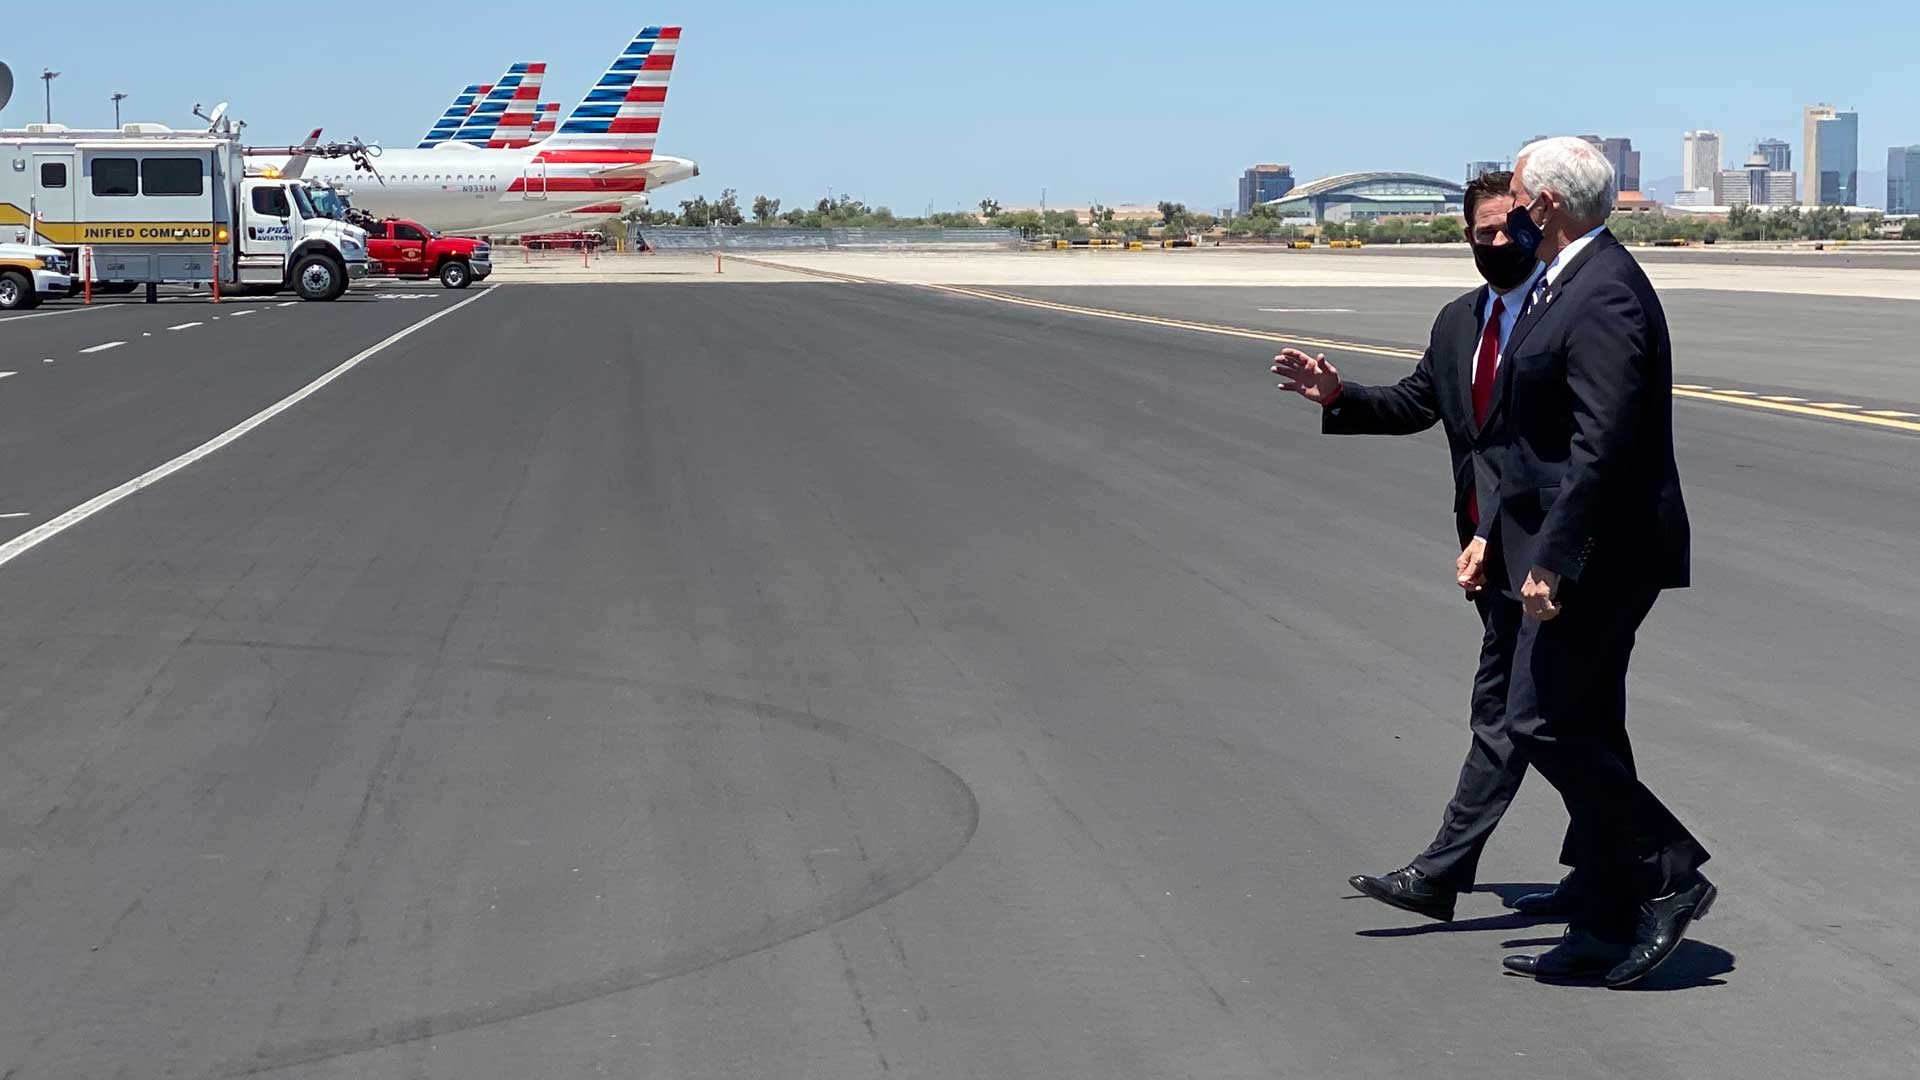 Gov. Doug Ducey greets Vice President Mike Pence on the tarmac in Phoenix.  Pence was in Arizona to discuss the state's response to the COVID-19 pandemic. July 1, 2020.